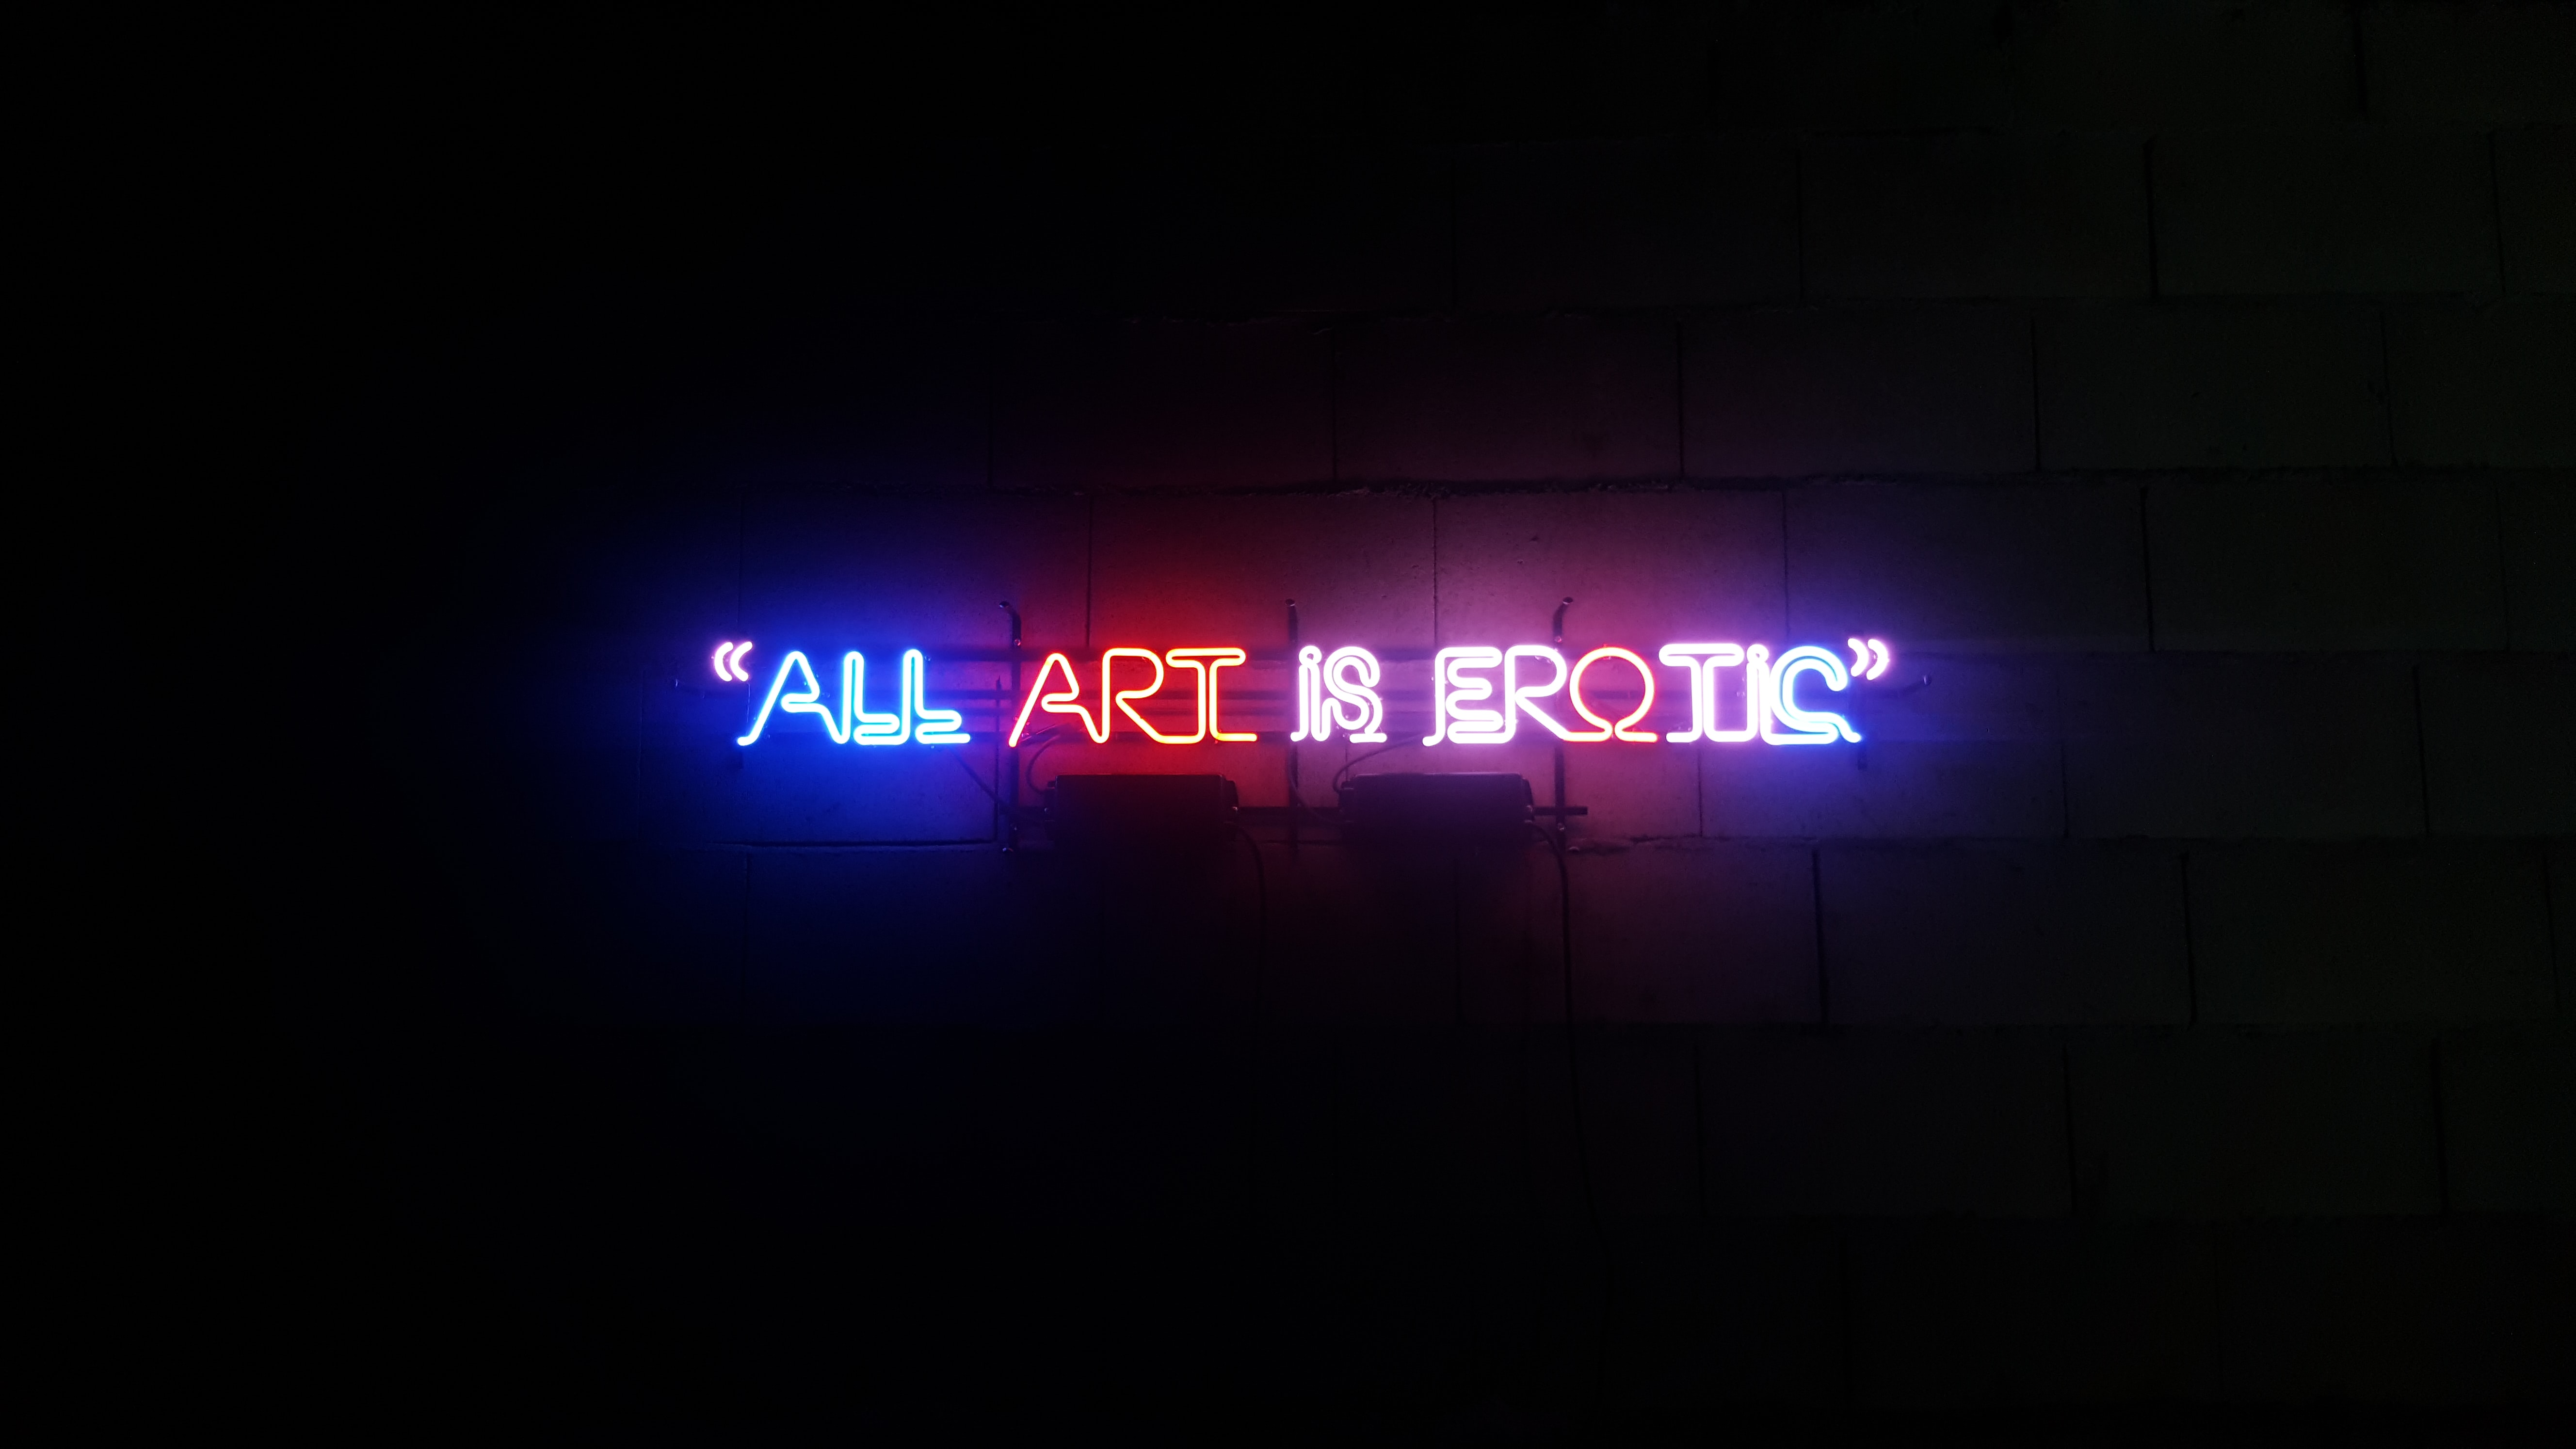 All art is erotic colorful neon sign on black background in Yeonmujang 15(sibo)-gil